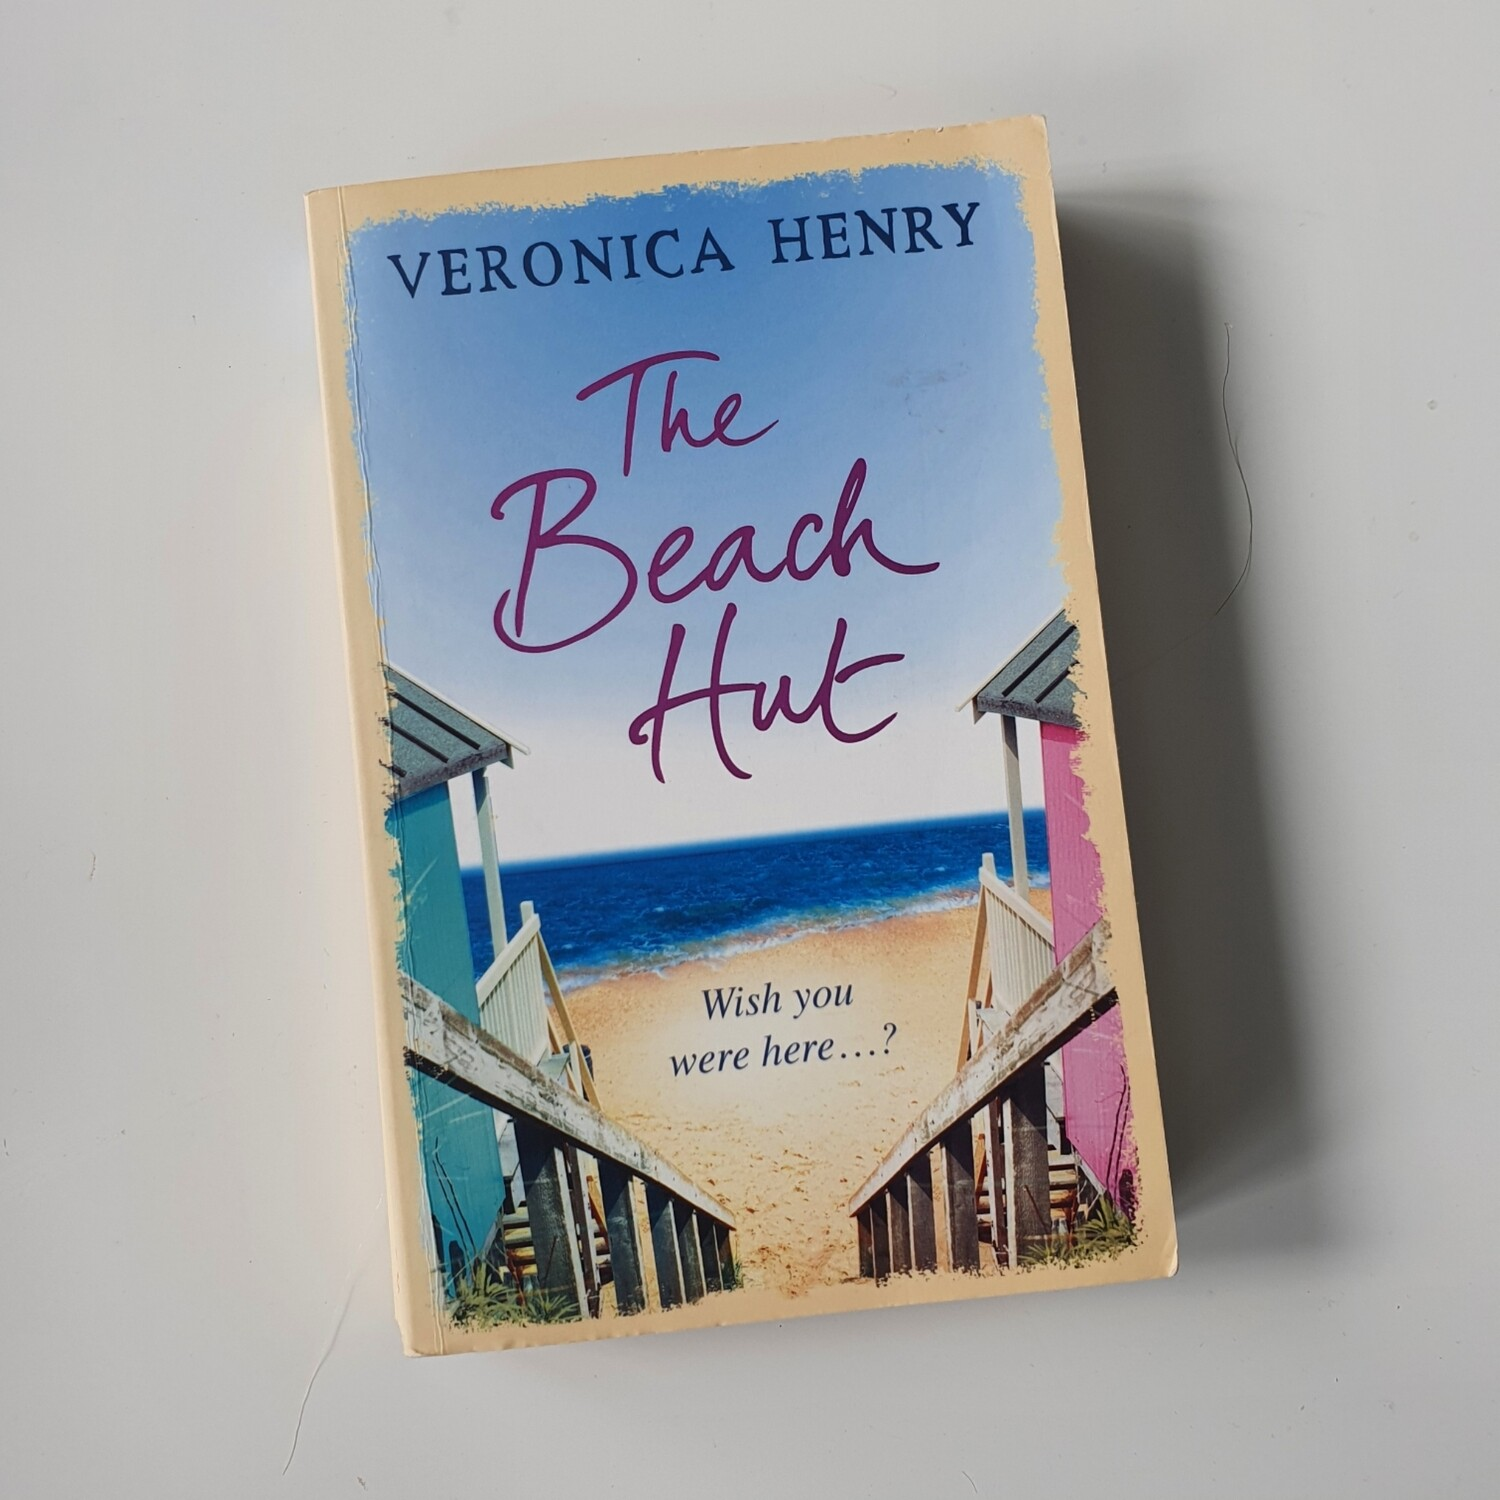 The Beach Hut by Veronica Henry Notebook - made from a paperback book